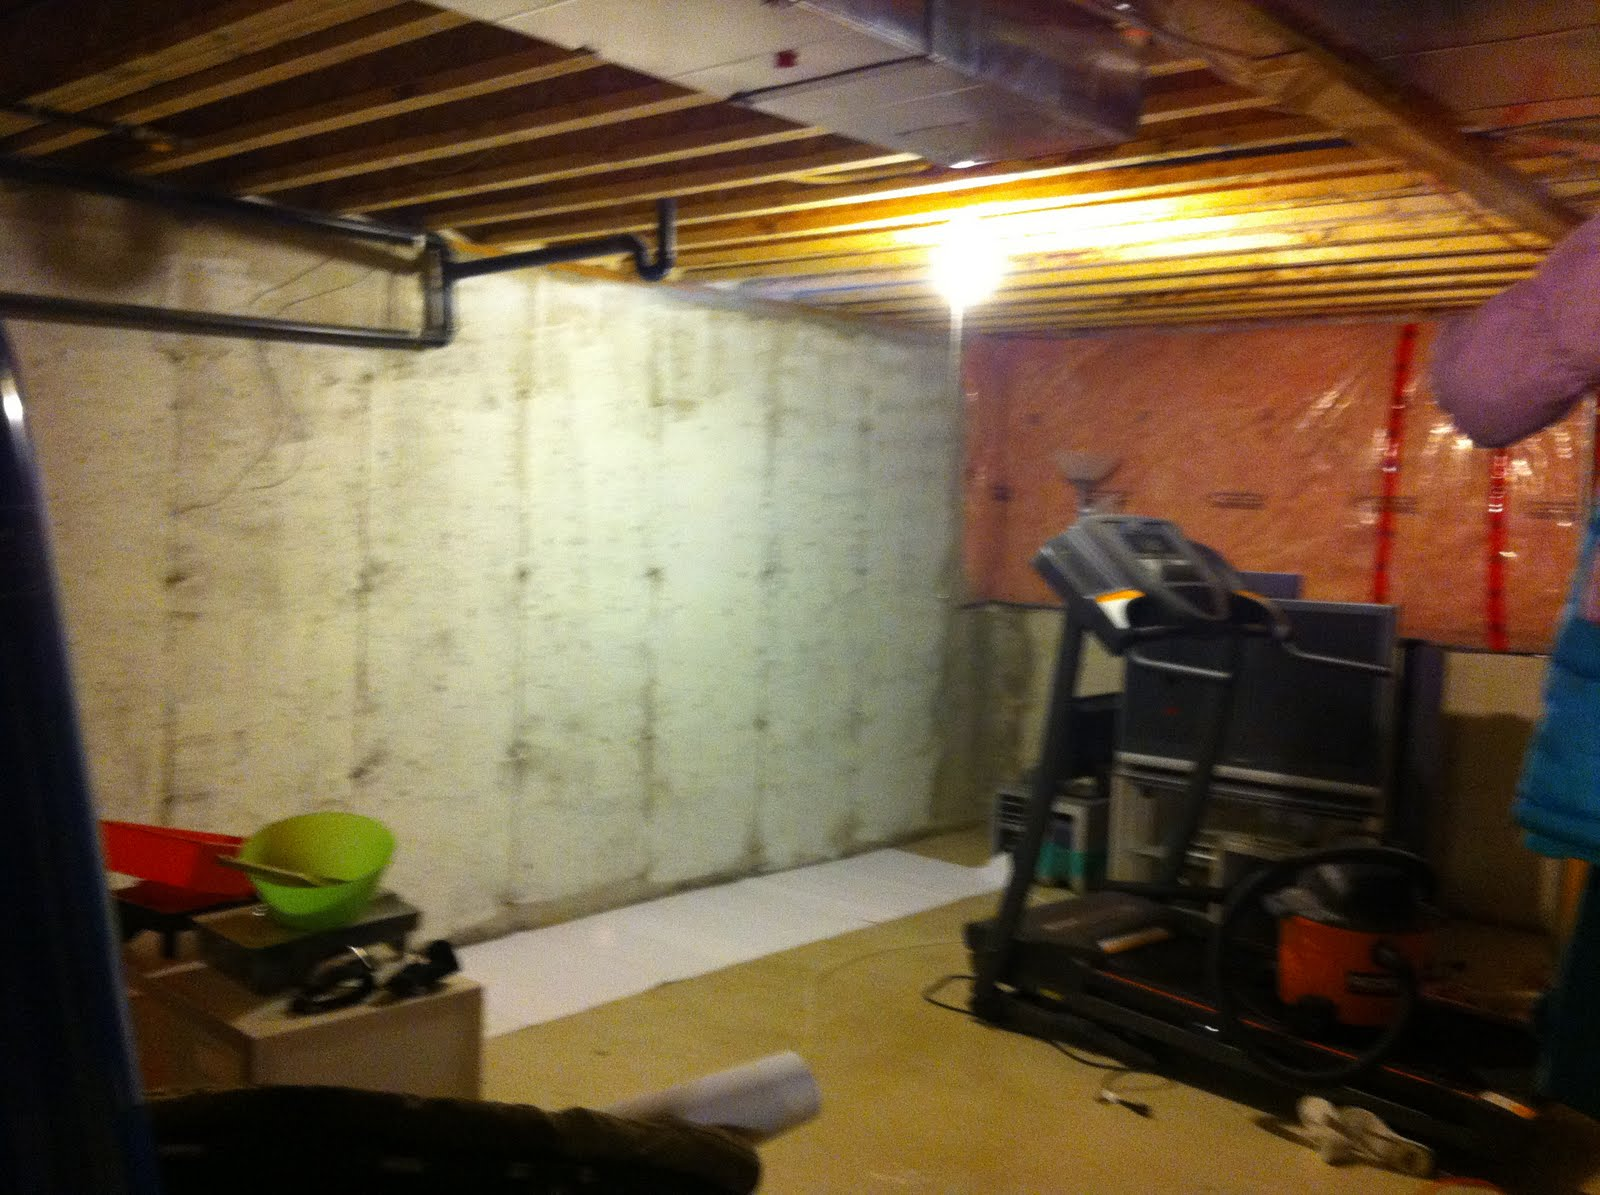 Painting Concrete Basement Walls Ideas Interior Unfinished Basement Wallssmart Ideas To Insulate Basement Wall .